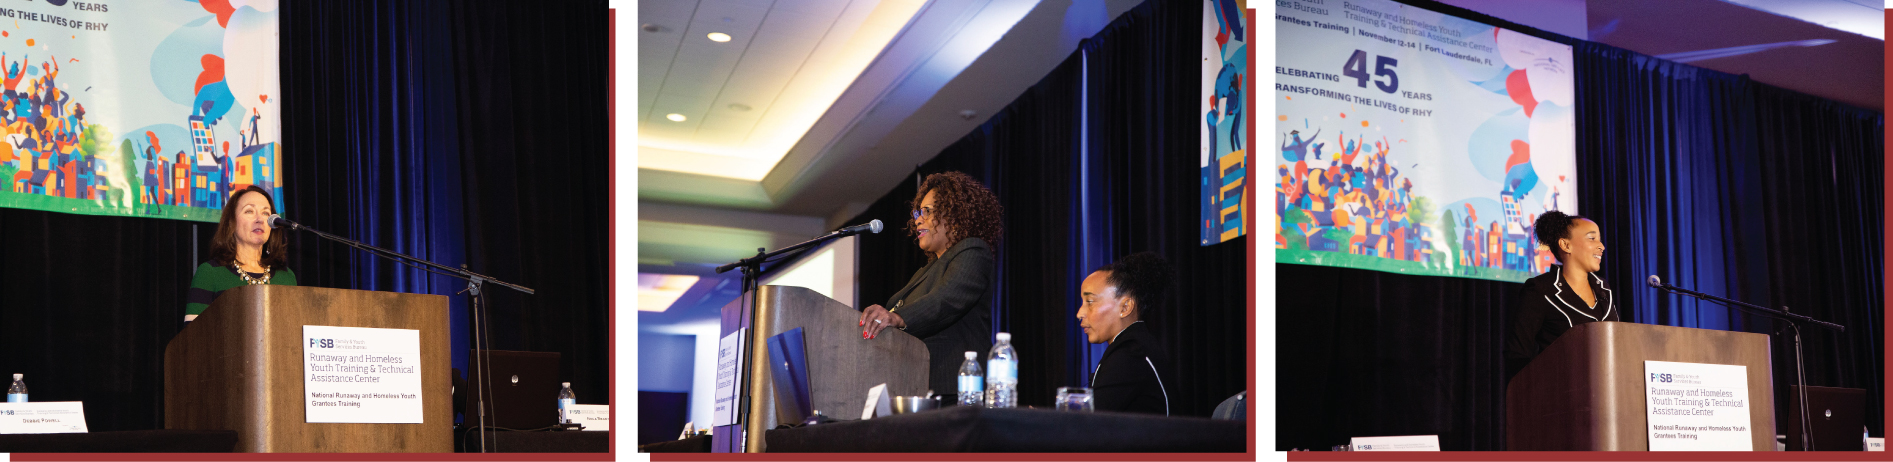 Three images - the first is of Commissioner Elizabeth Darling speaking on stage. The second is of Deputy Associate Commissioner Debbie Powell speaking, and the third image is Nola Brantley providing her keynote at the 2019 National RHY Grantees Training's opening session.